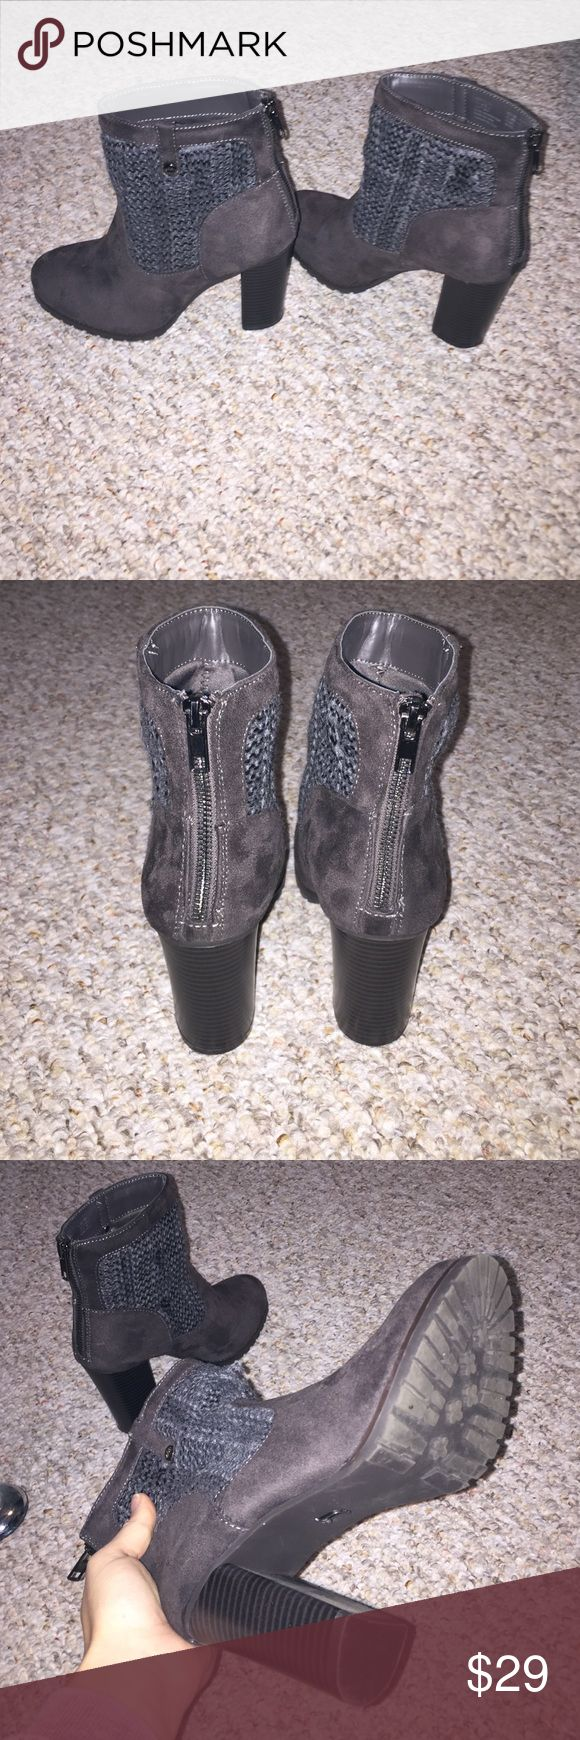 Juicy Couture Heel Boots Only worn once or twice, just a little too high for my liking! Brown suede and gray fabric. Perfect condition. Juicy Couture Shoes Heeled Boots